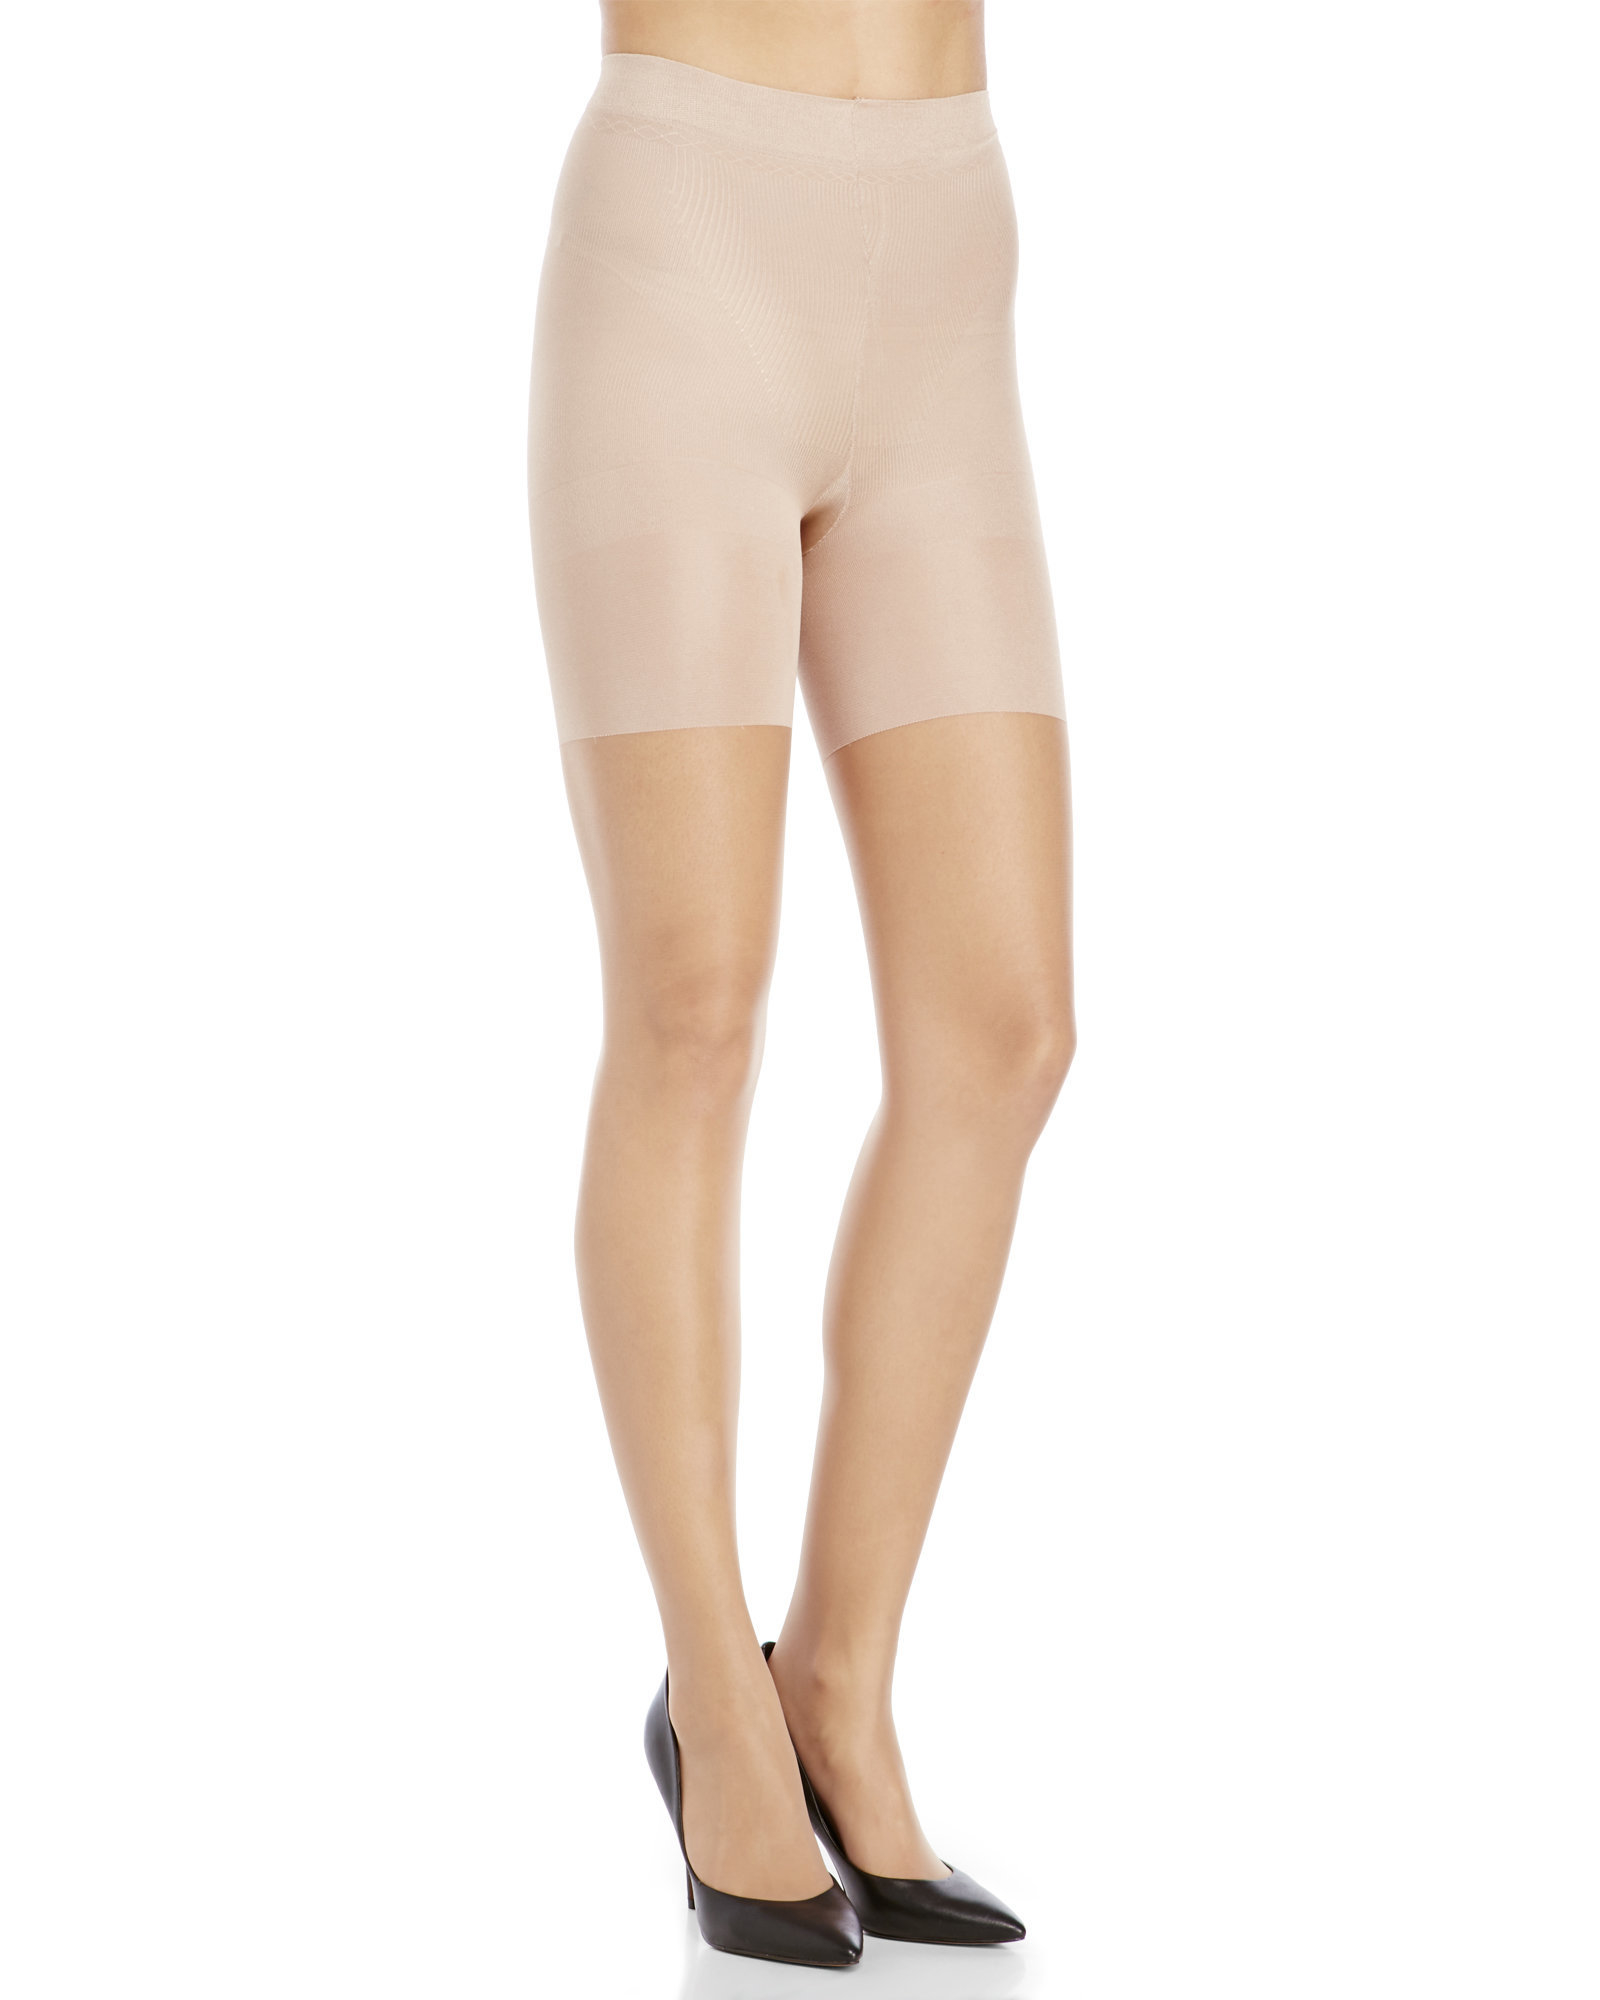 4a9206e9982 Spanx Super Control Top Sheer Tights in Natural - Lyst